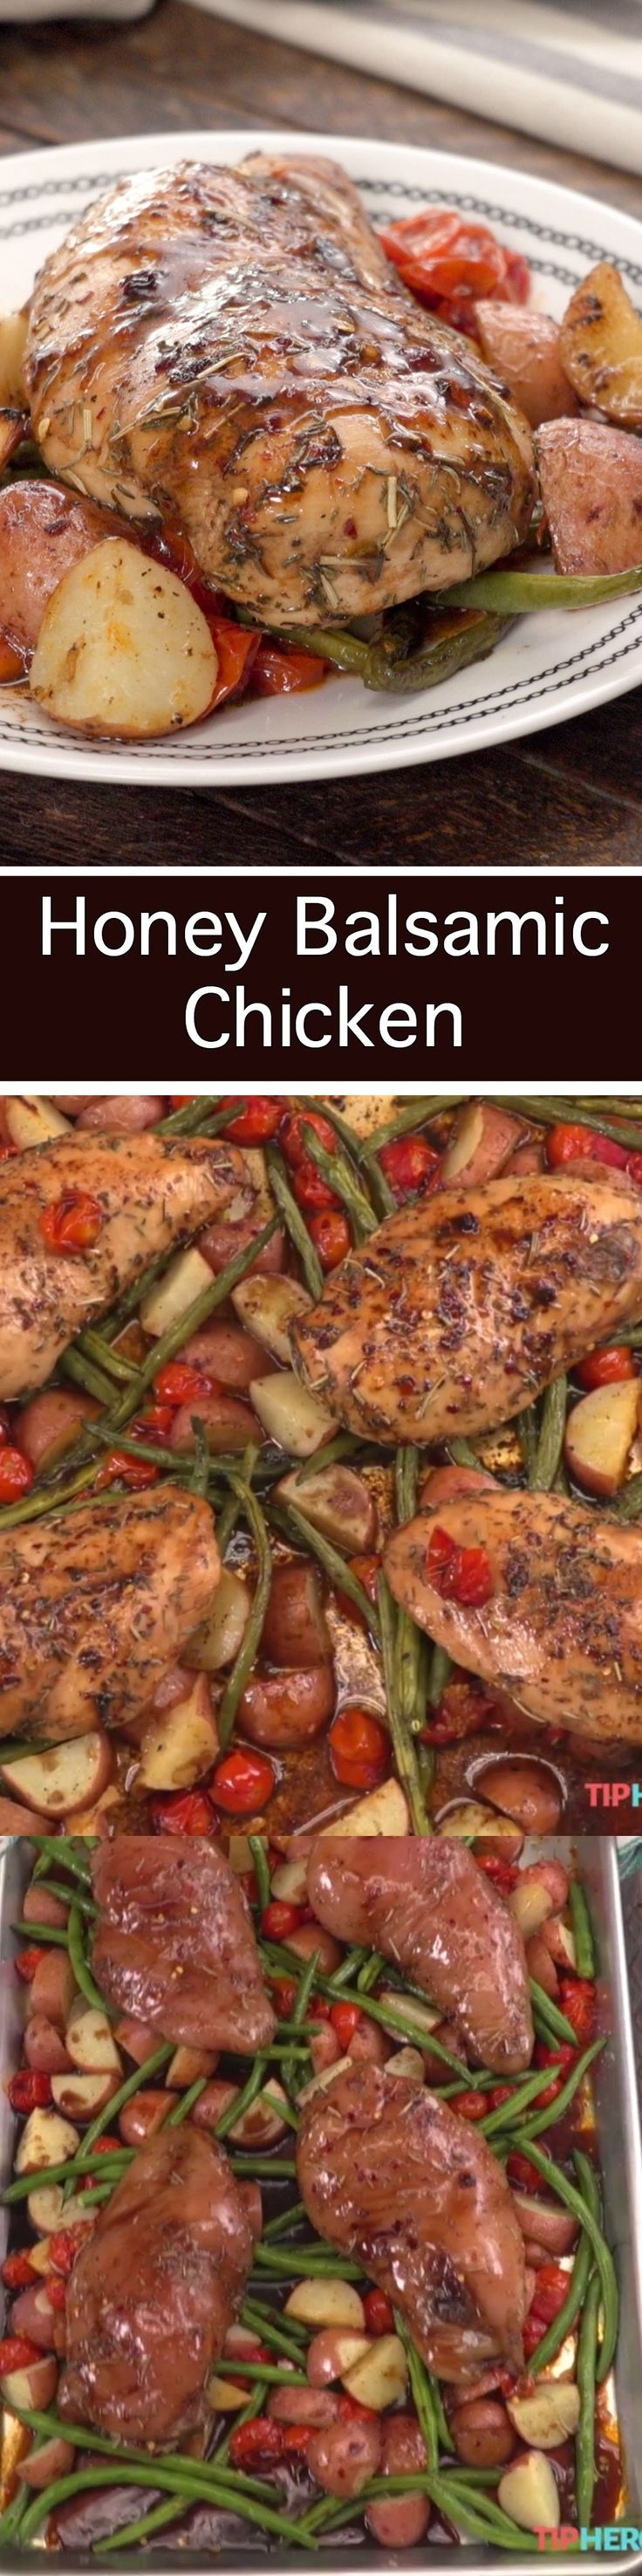 Honey Balsamic is a great way to bring full flavor to chicken. This sheet pan meal is easy to prep and is impressive to put on the table.